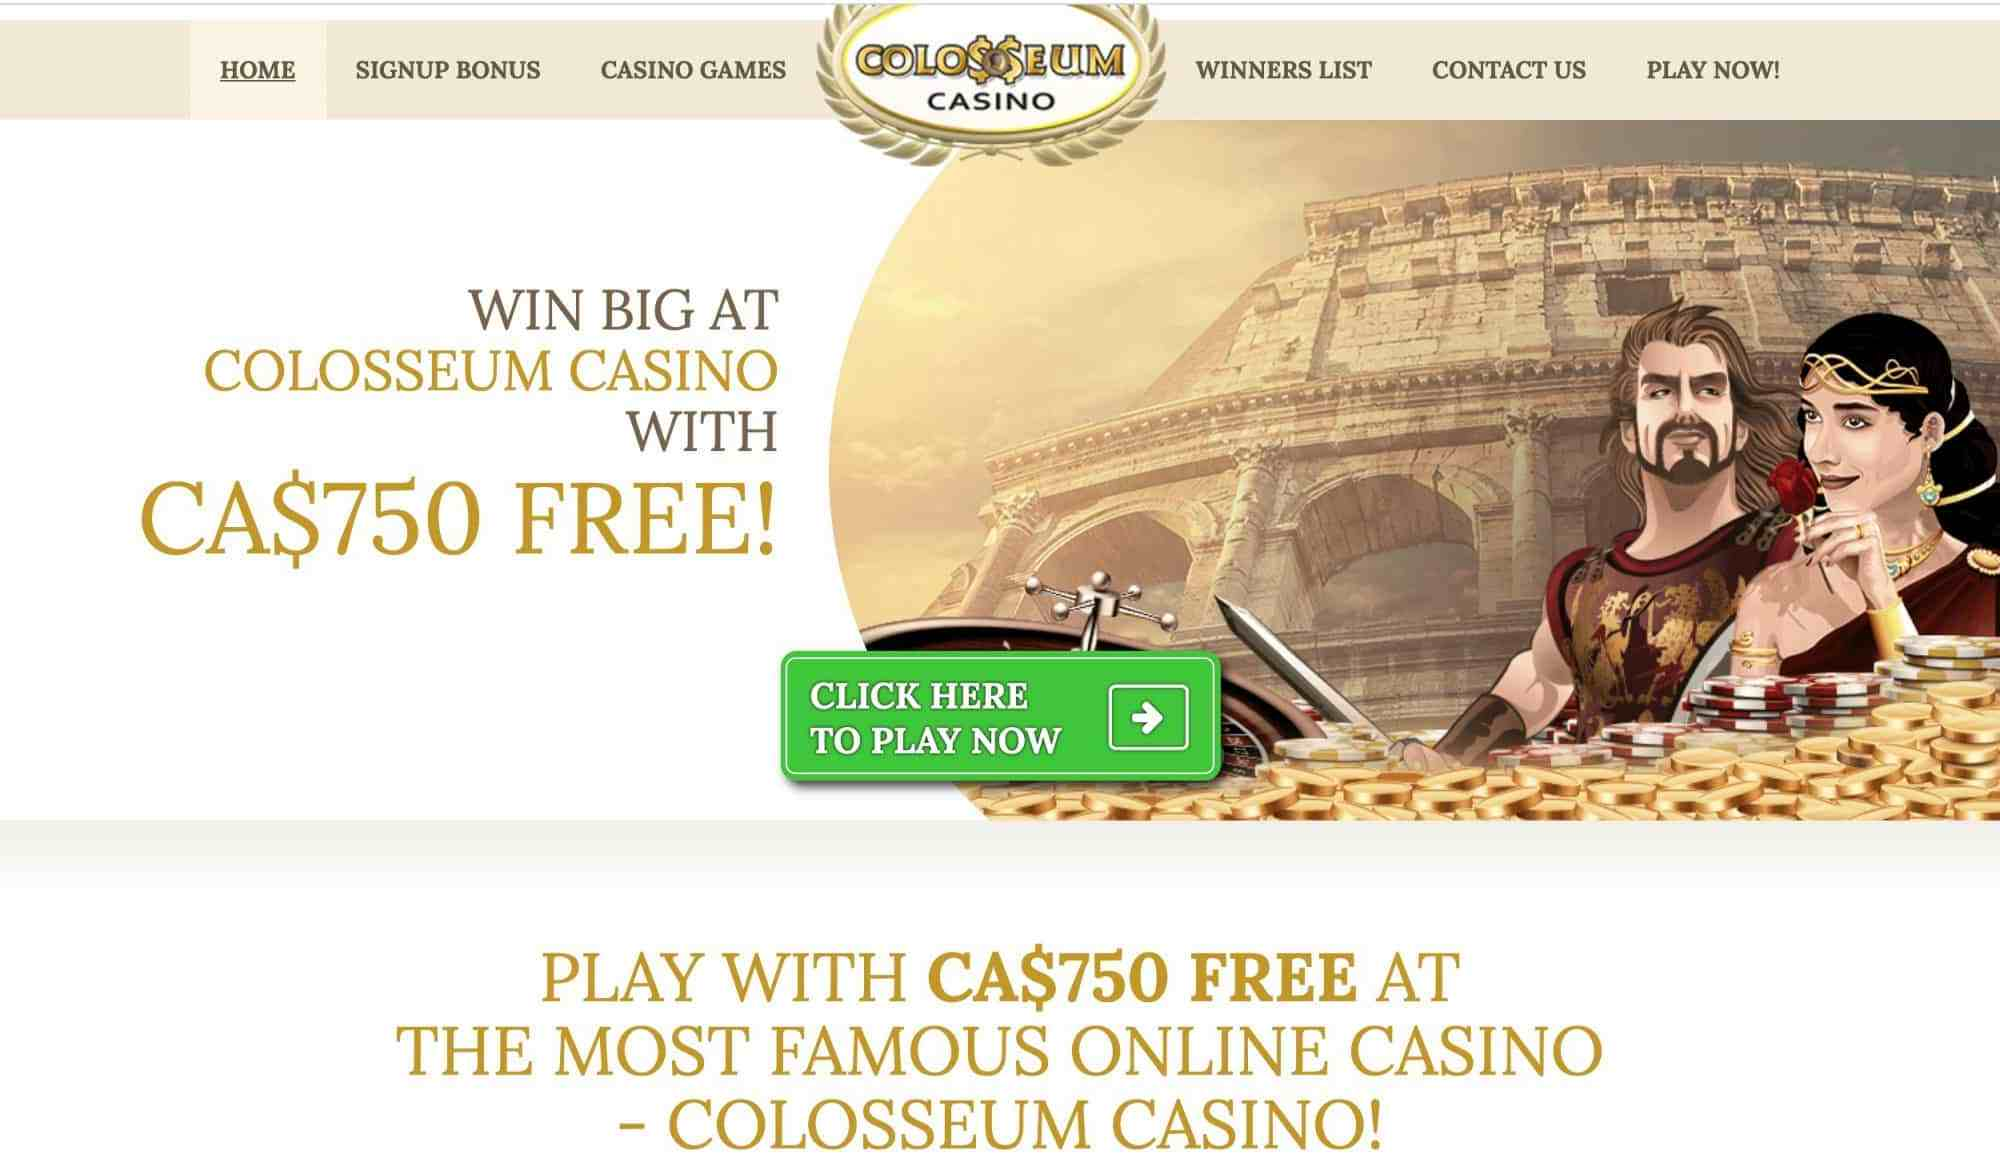 Colosseum Casino - 750% match bonus of up to $210 now!